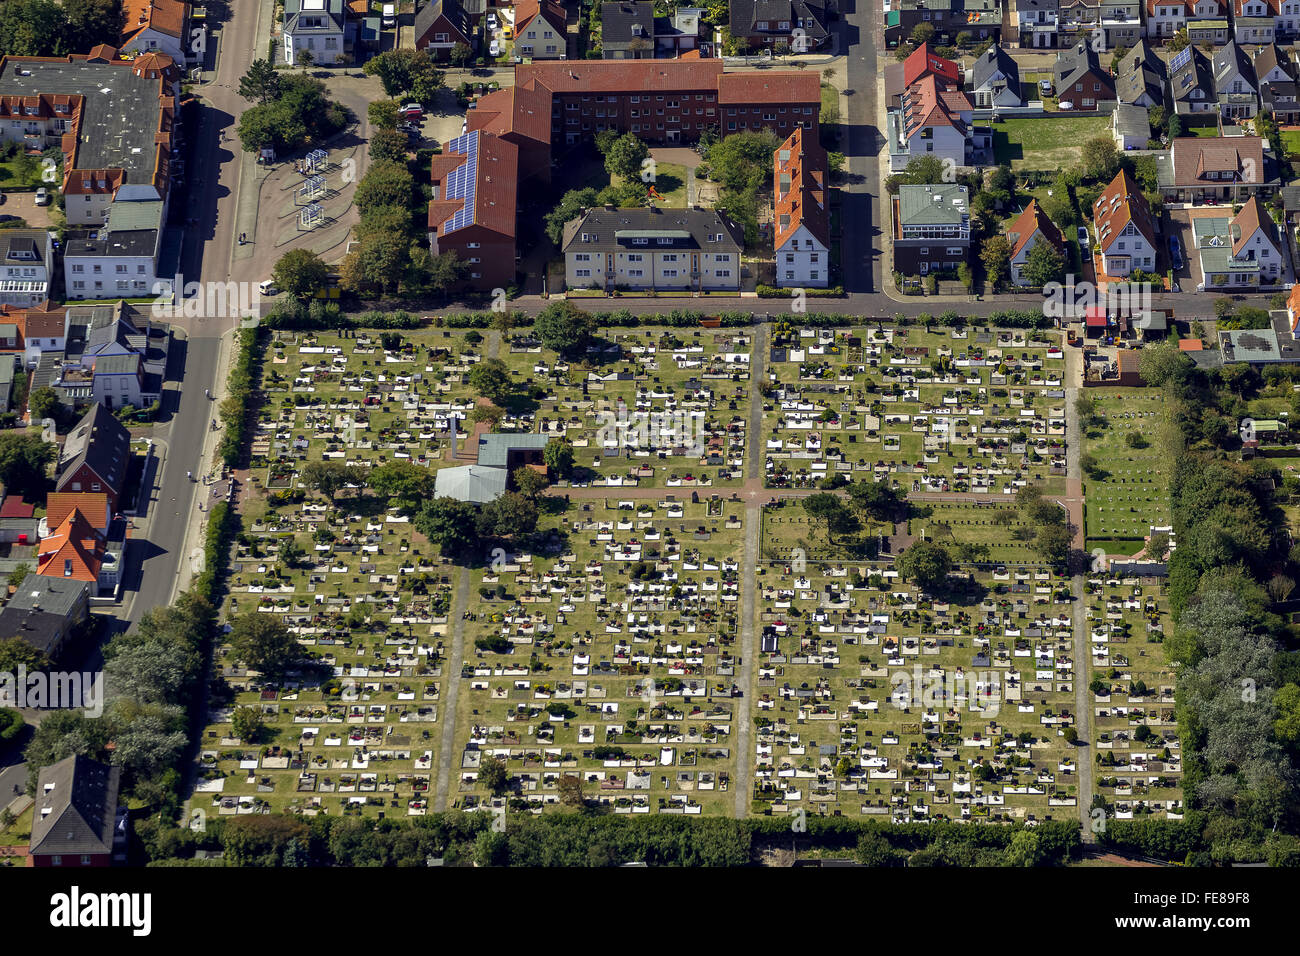 Cemetery Norderney, aerial, Norderney, North Sea, North Sea island, East Frisian Islands, Lower Saxony, Germany, Stock Photo